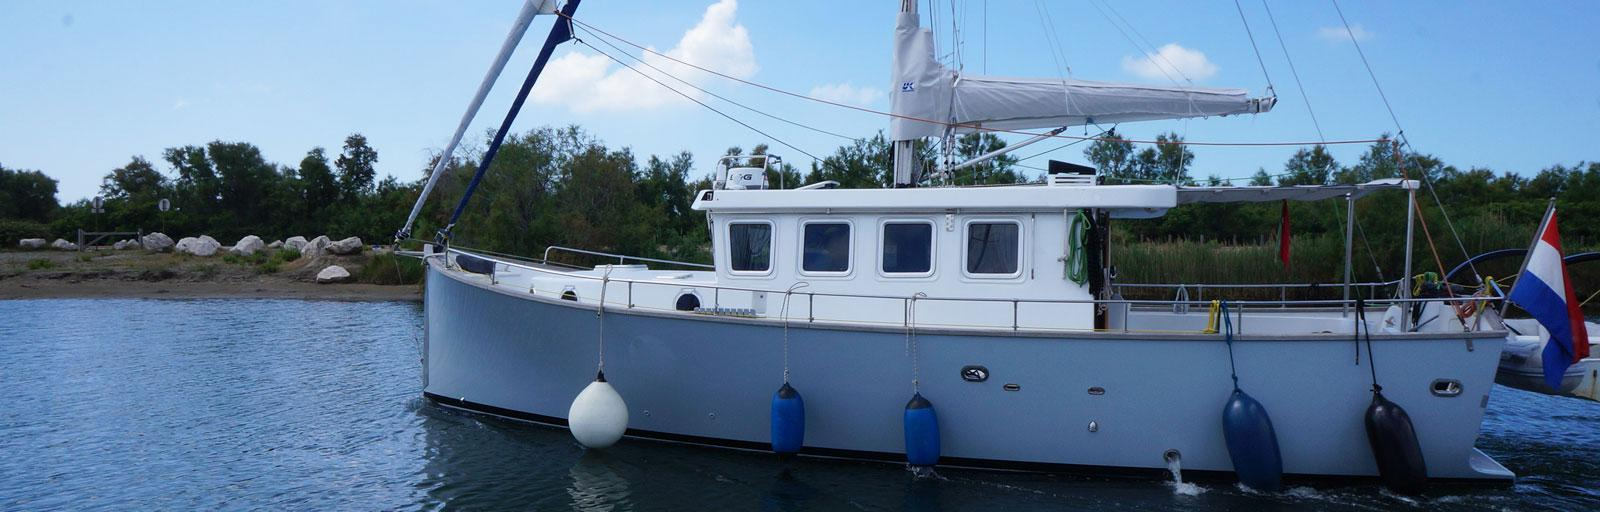 AYC Yachtbrokers - Trawler Fifty 38 JP Brouns